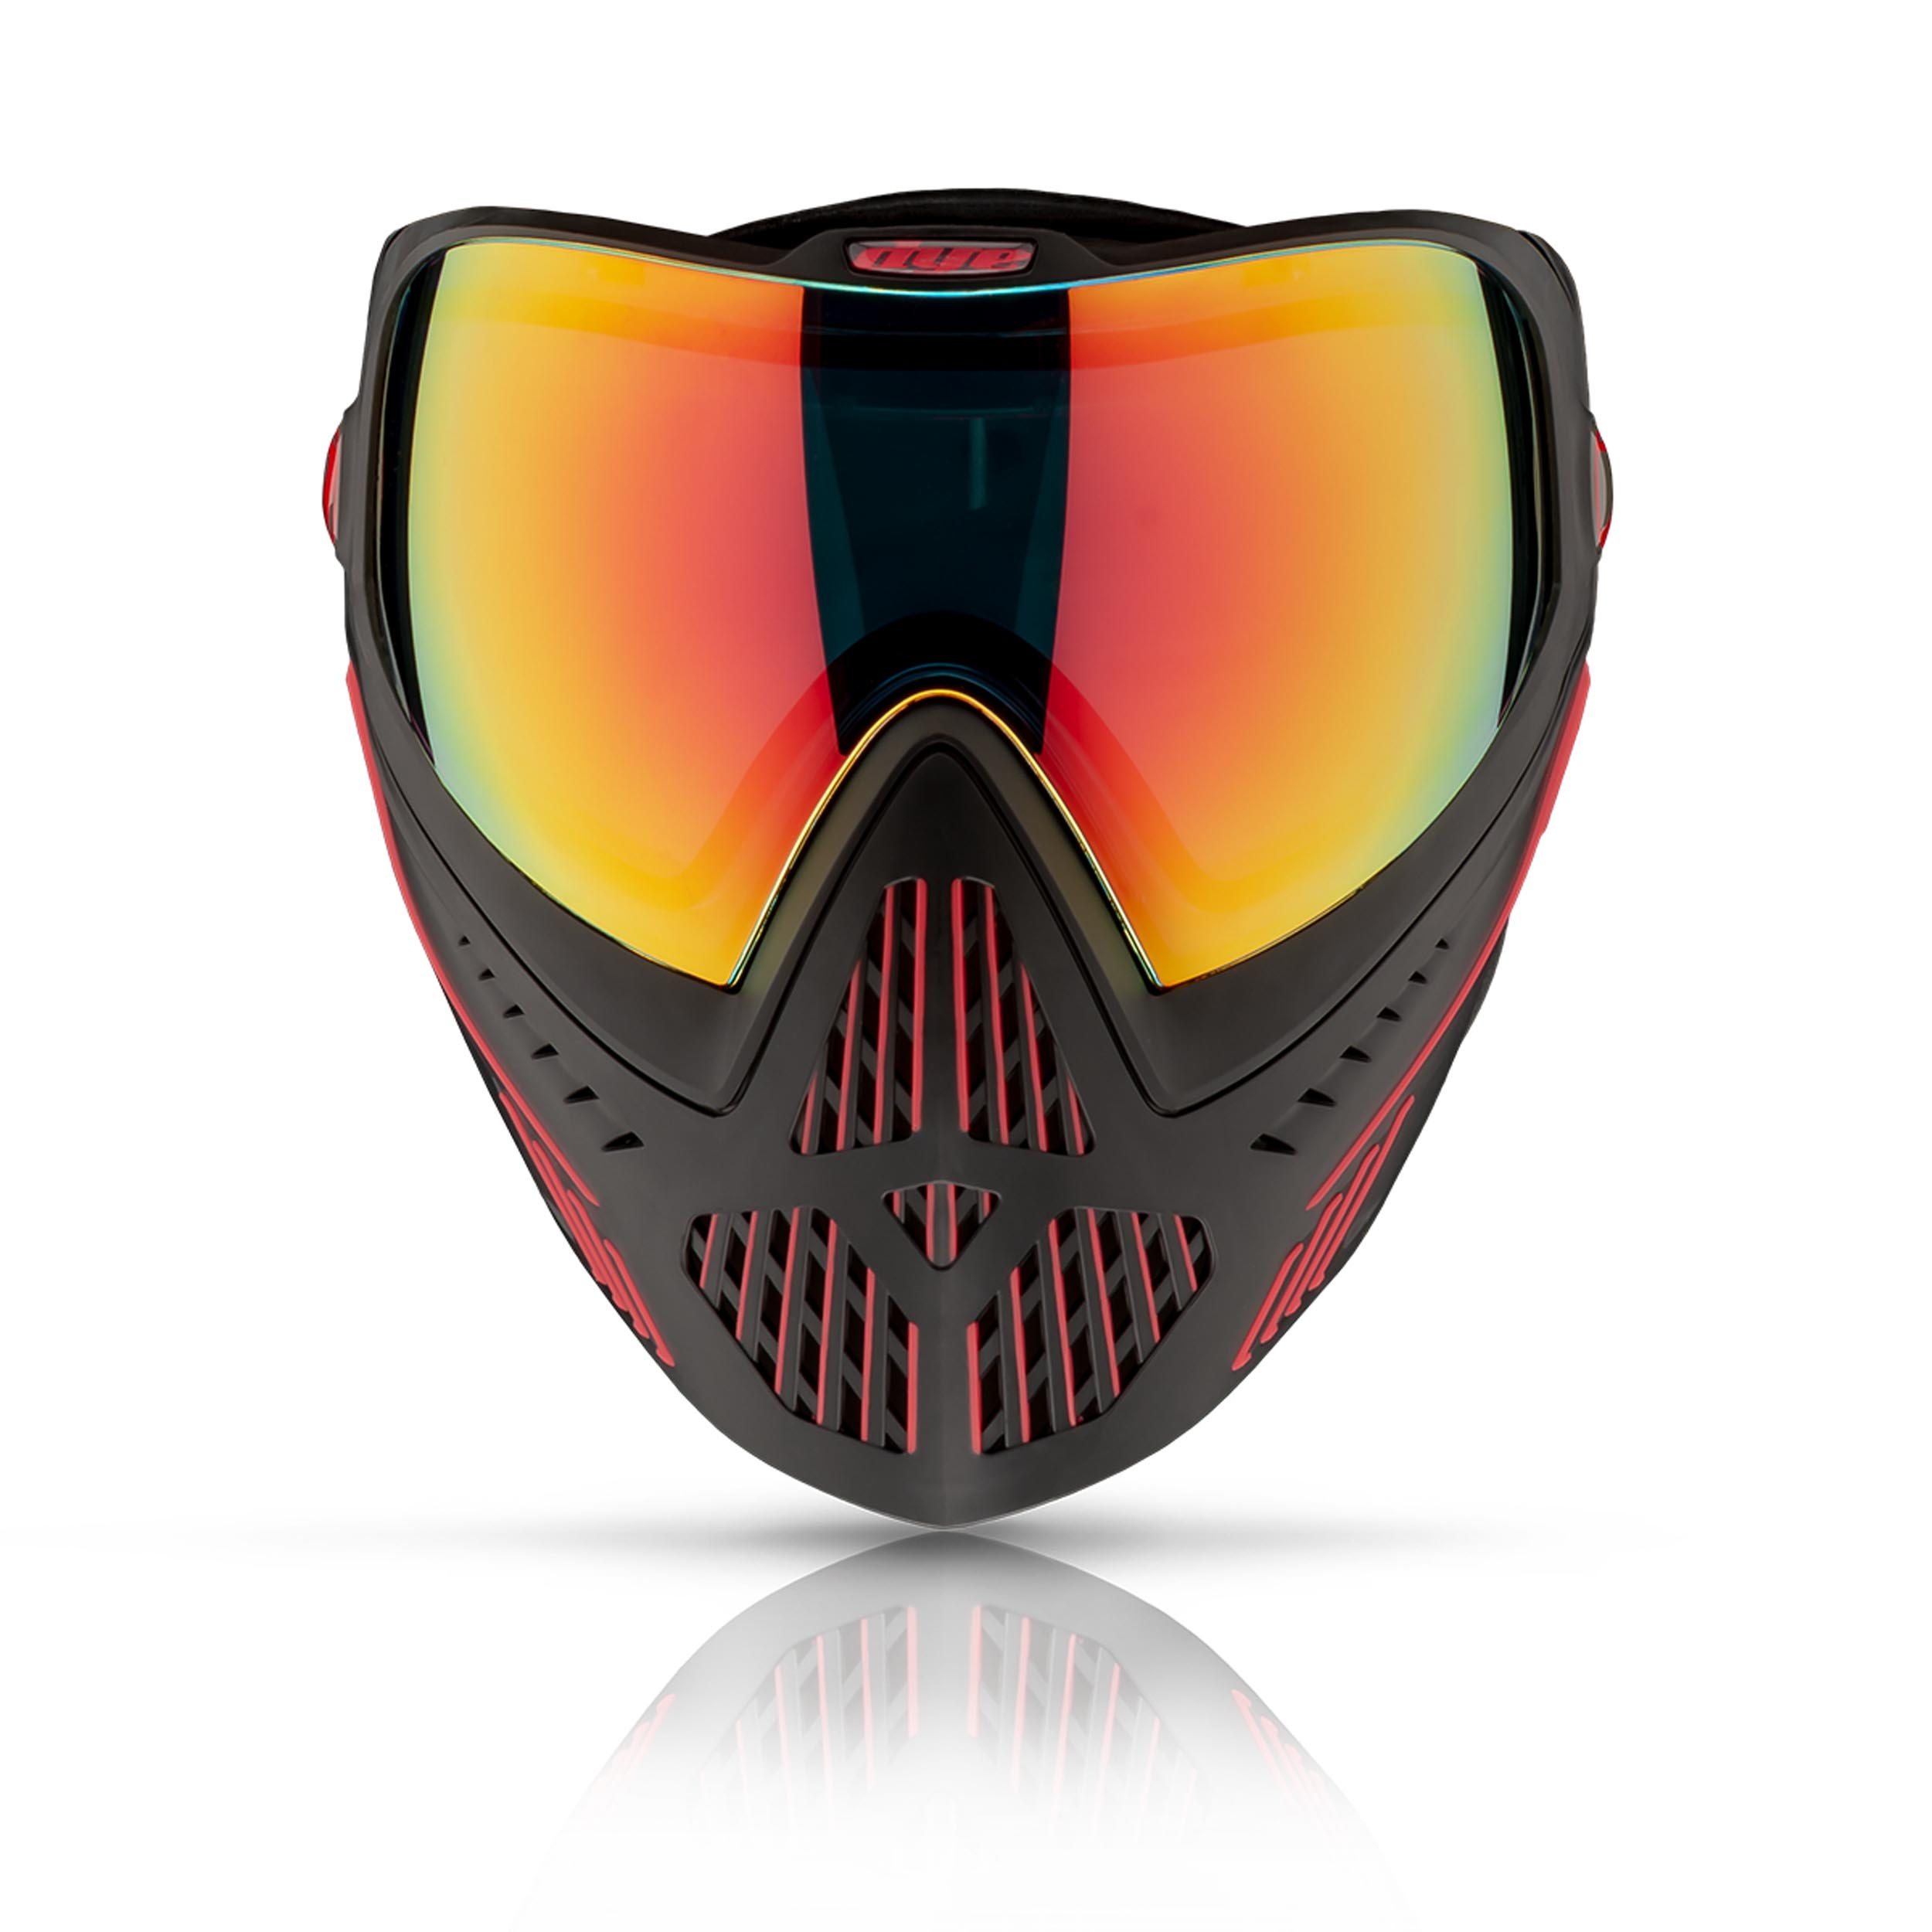 MAS471 Dye I5 thermal goggle Onyx Black Gold 2.0 - MAS473